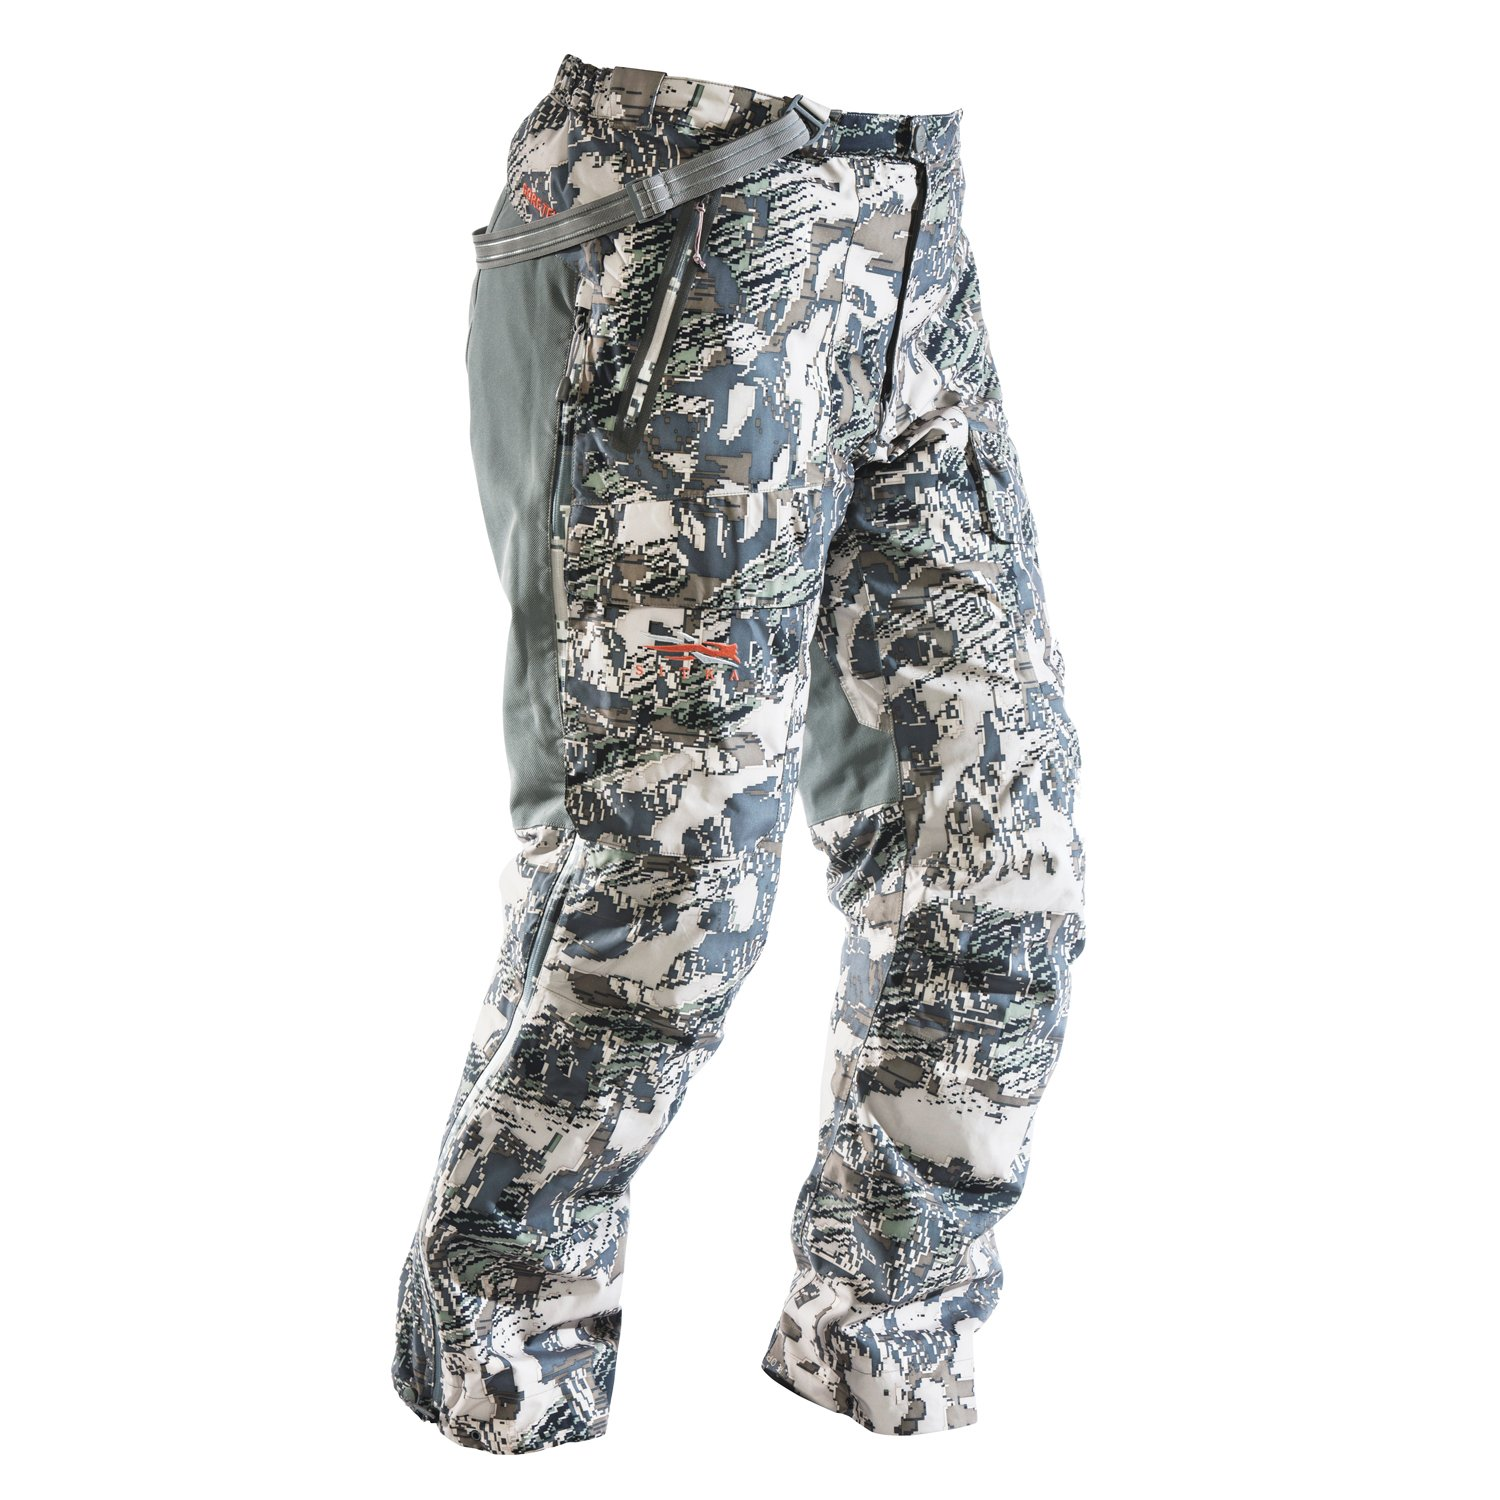 SITKA Gear Blizzard Bib Pant Optifade Open Country Medium